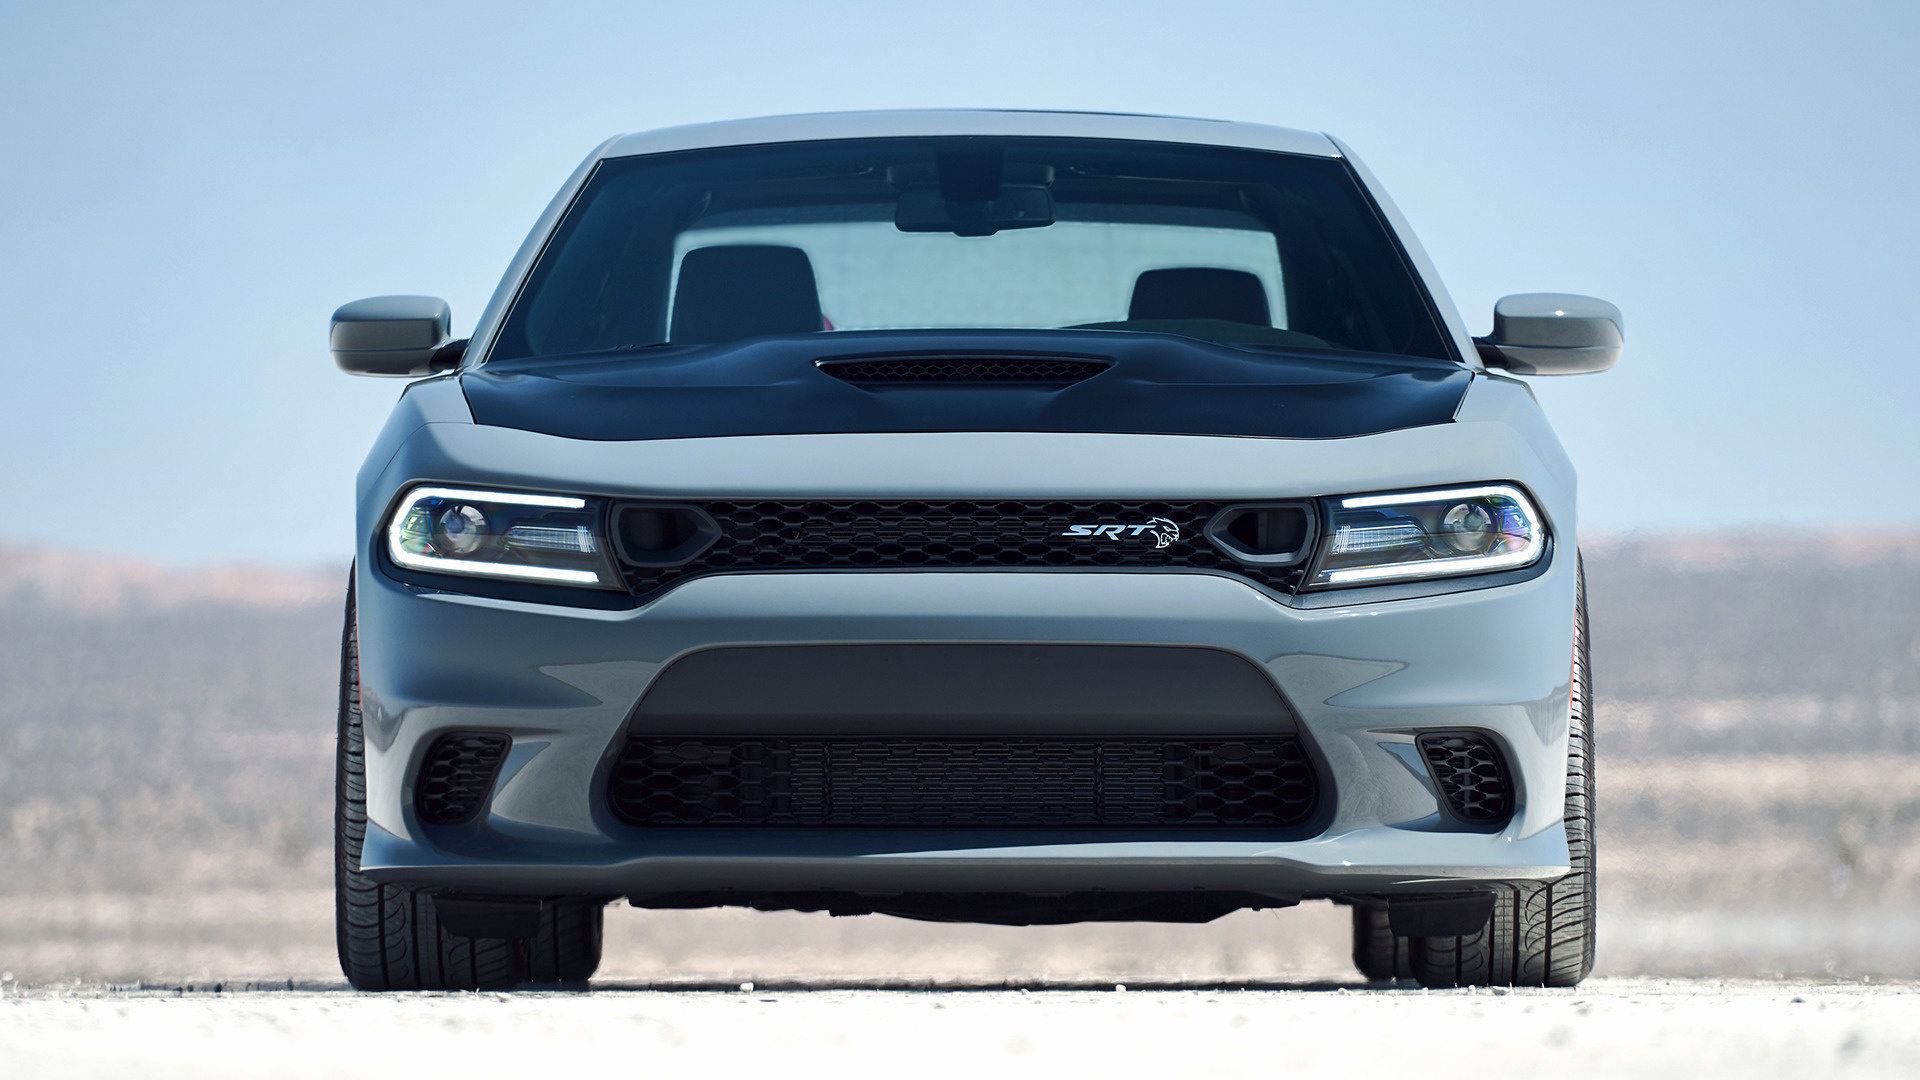 Charger Srt Hellcat >> 2019 Dodge Charger SRT Hellcat - Wallpapers and HD Images ...